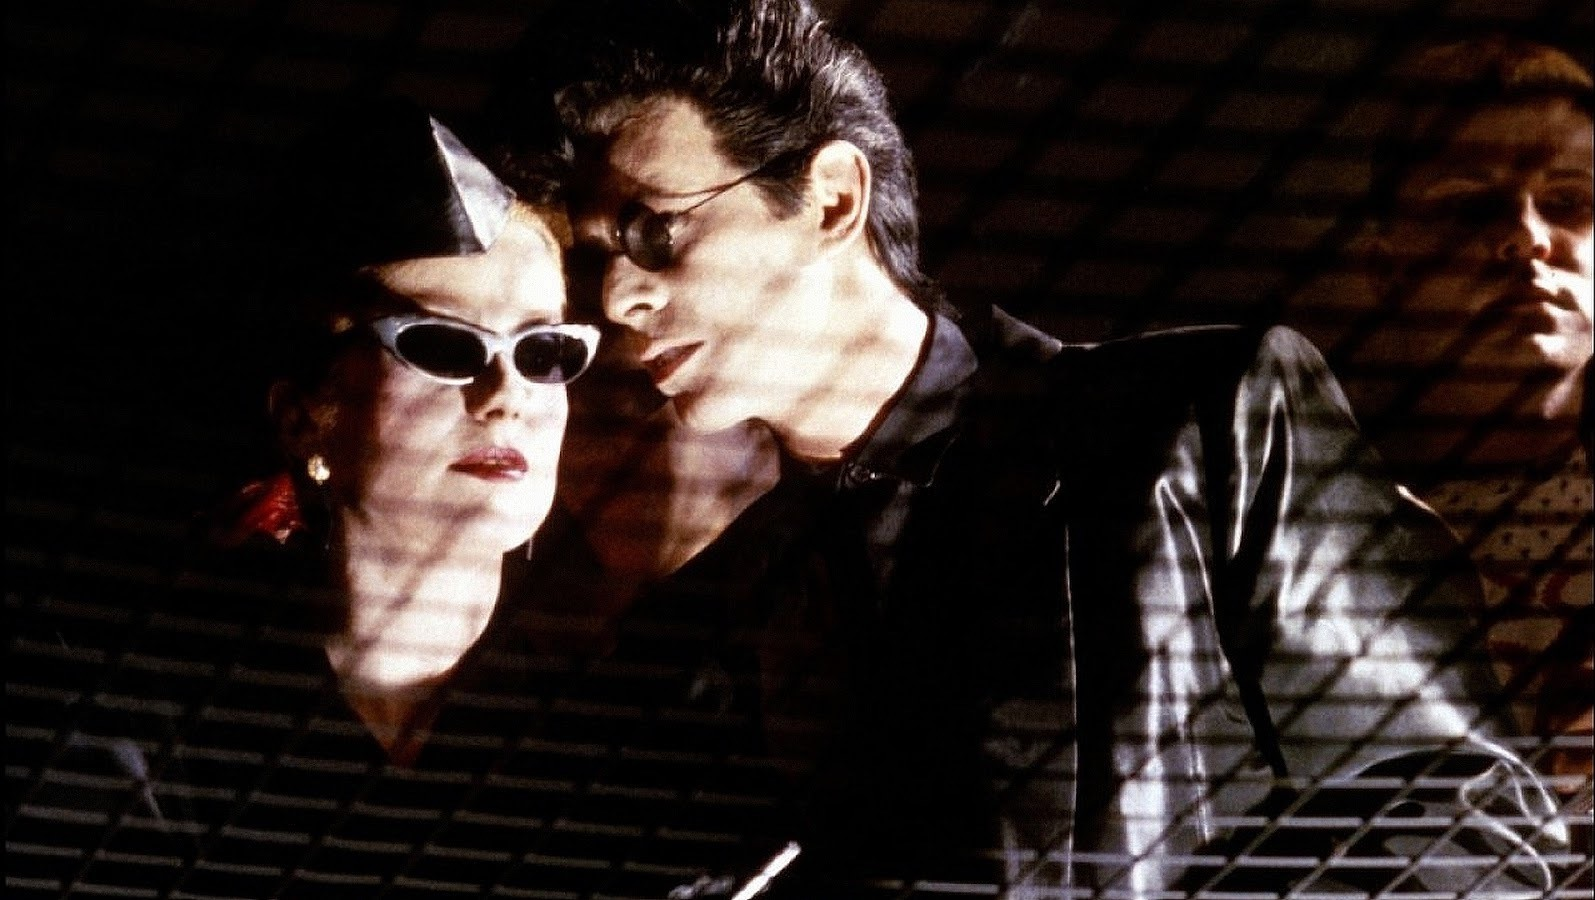 Catherine Deneuve, David Bowie in The Hunger (1983)